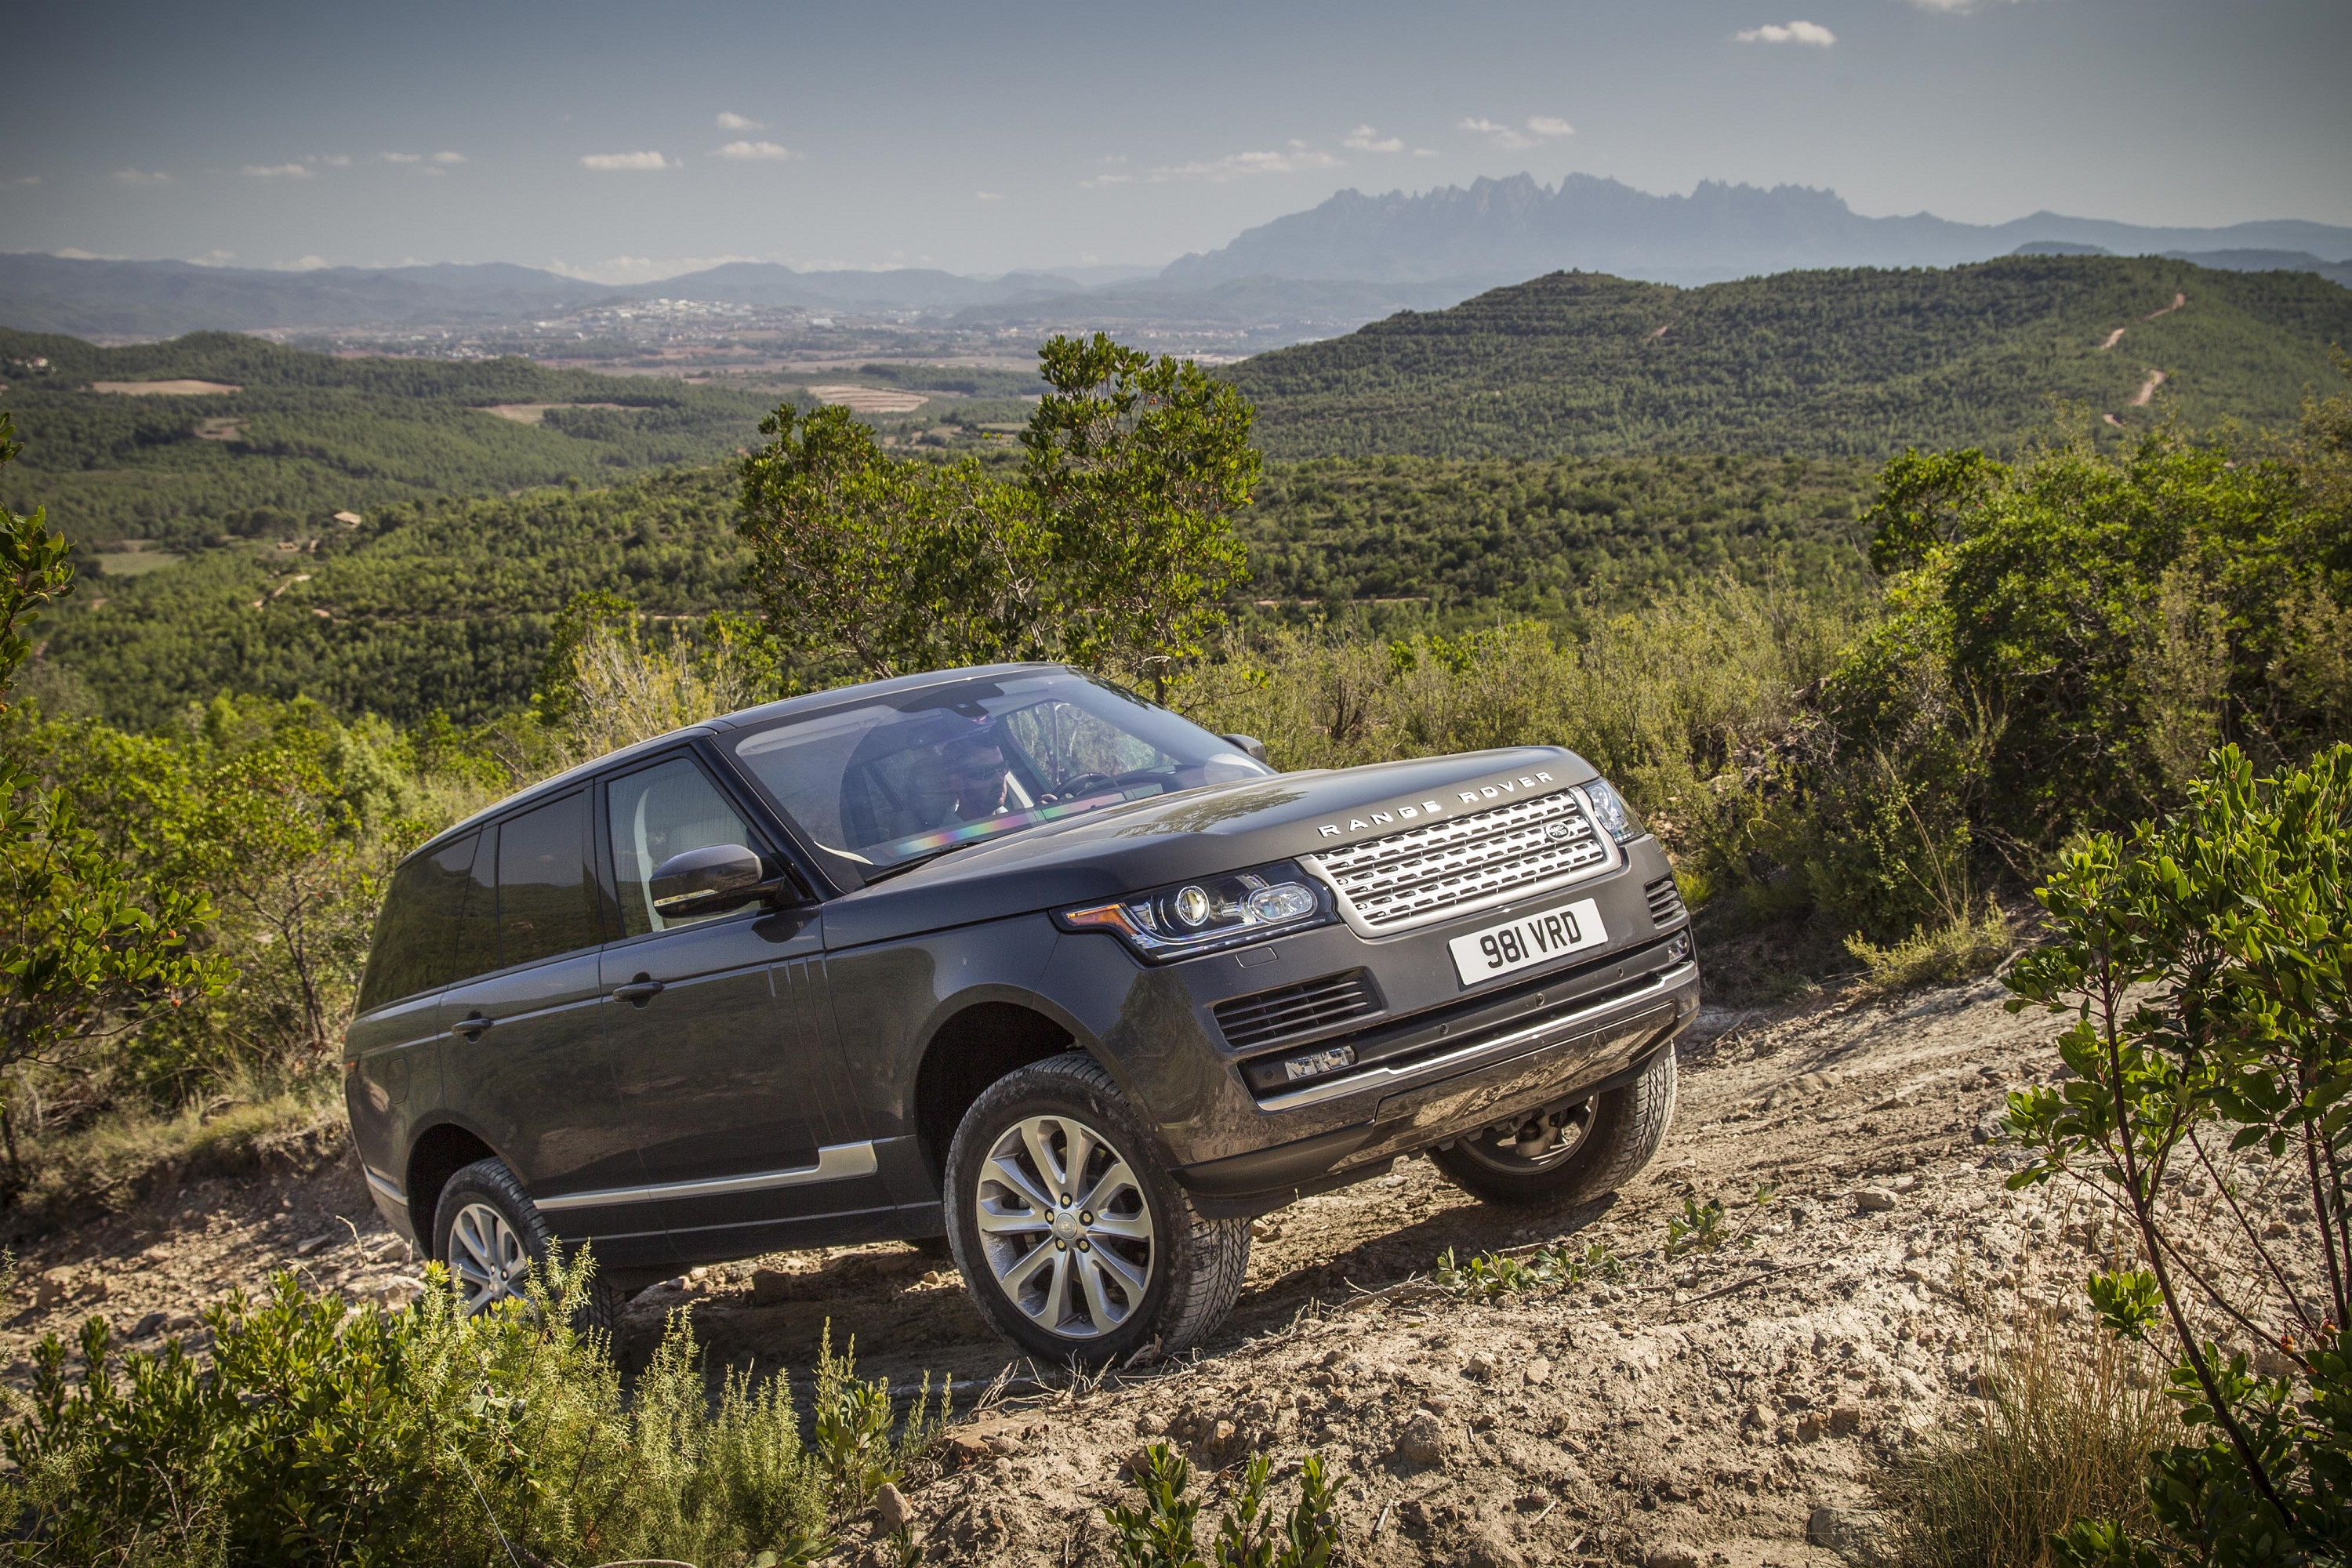 Range Rover Lease Price >> 2019 Land Rover: The Swanky Off-Road Range Rover - Down the Road - - GrooveCar